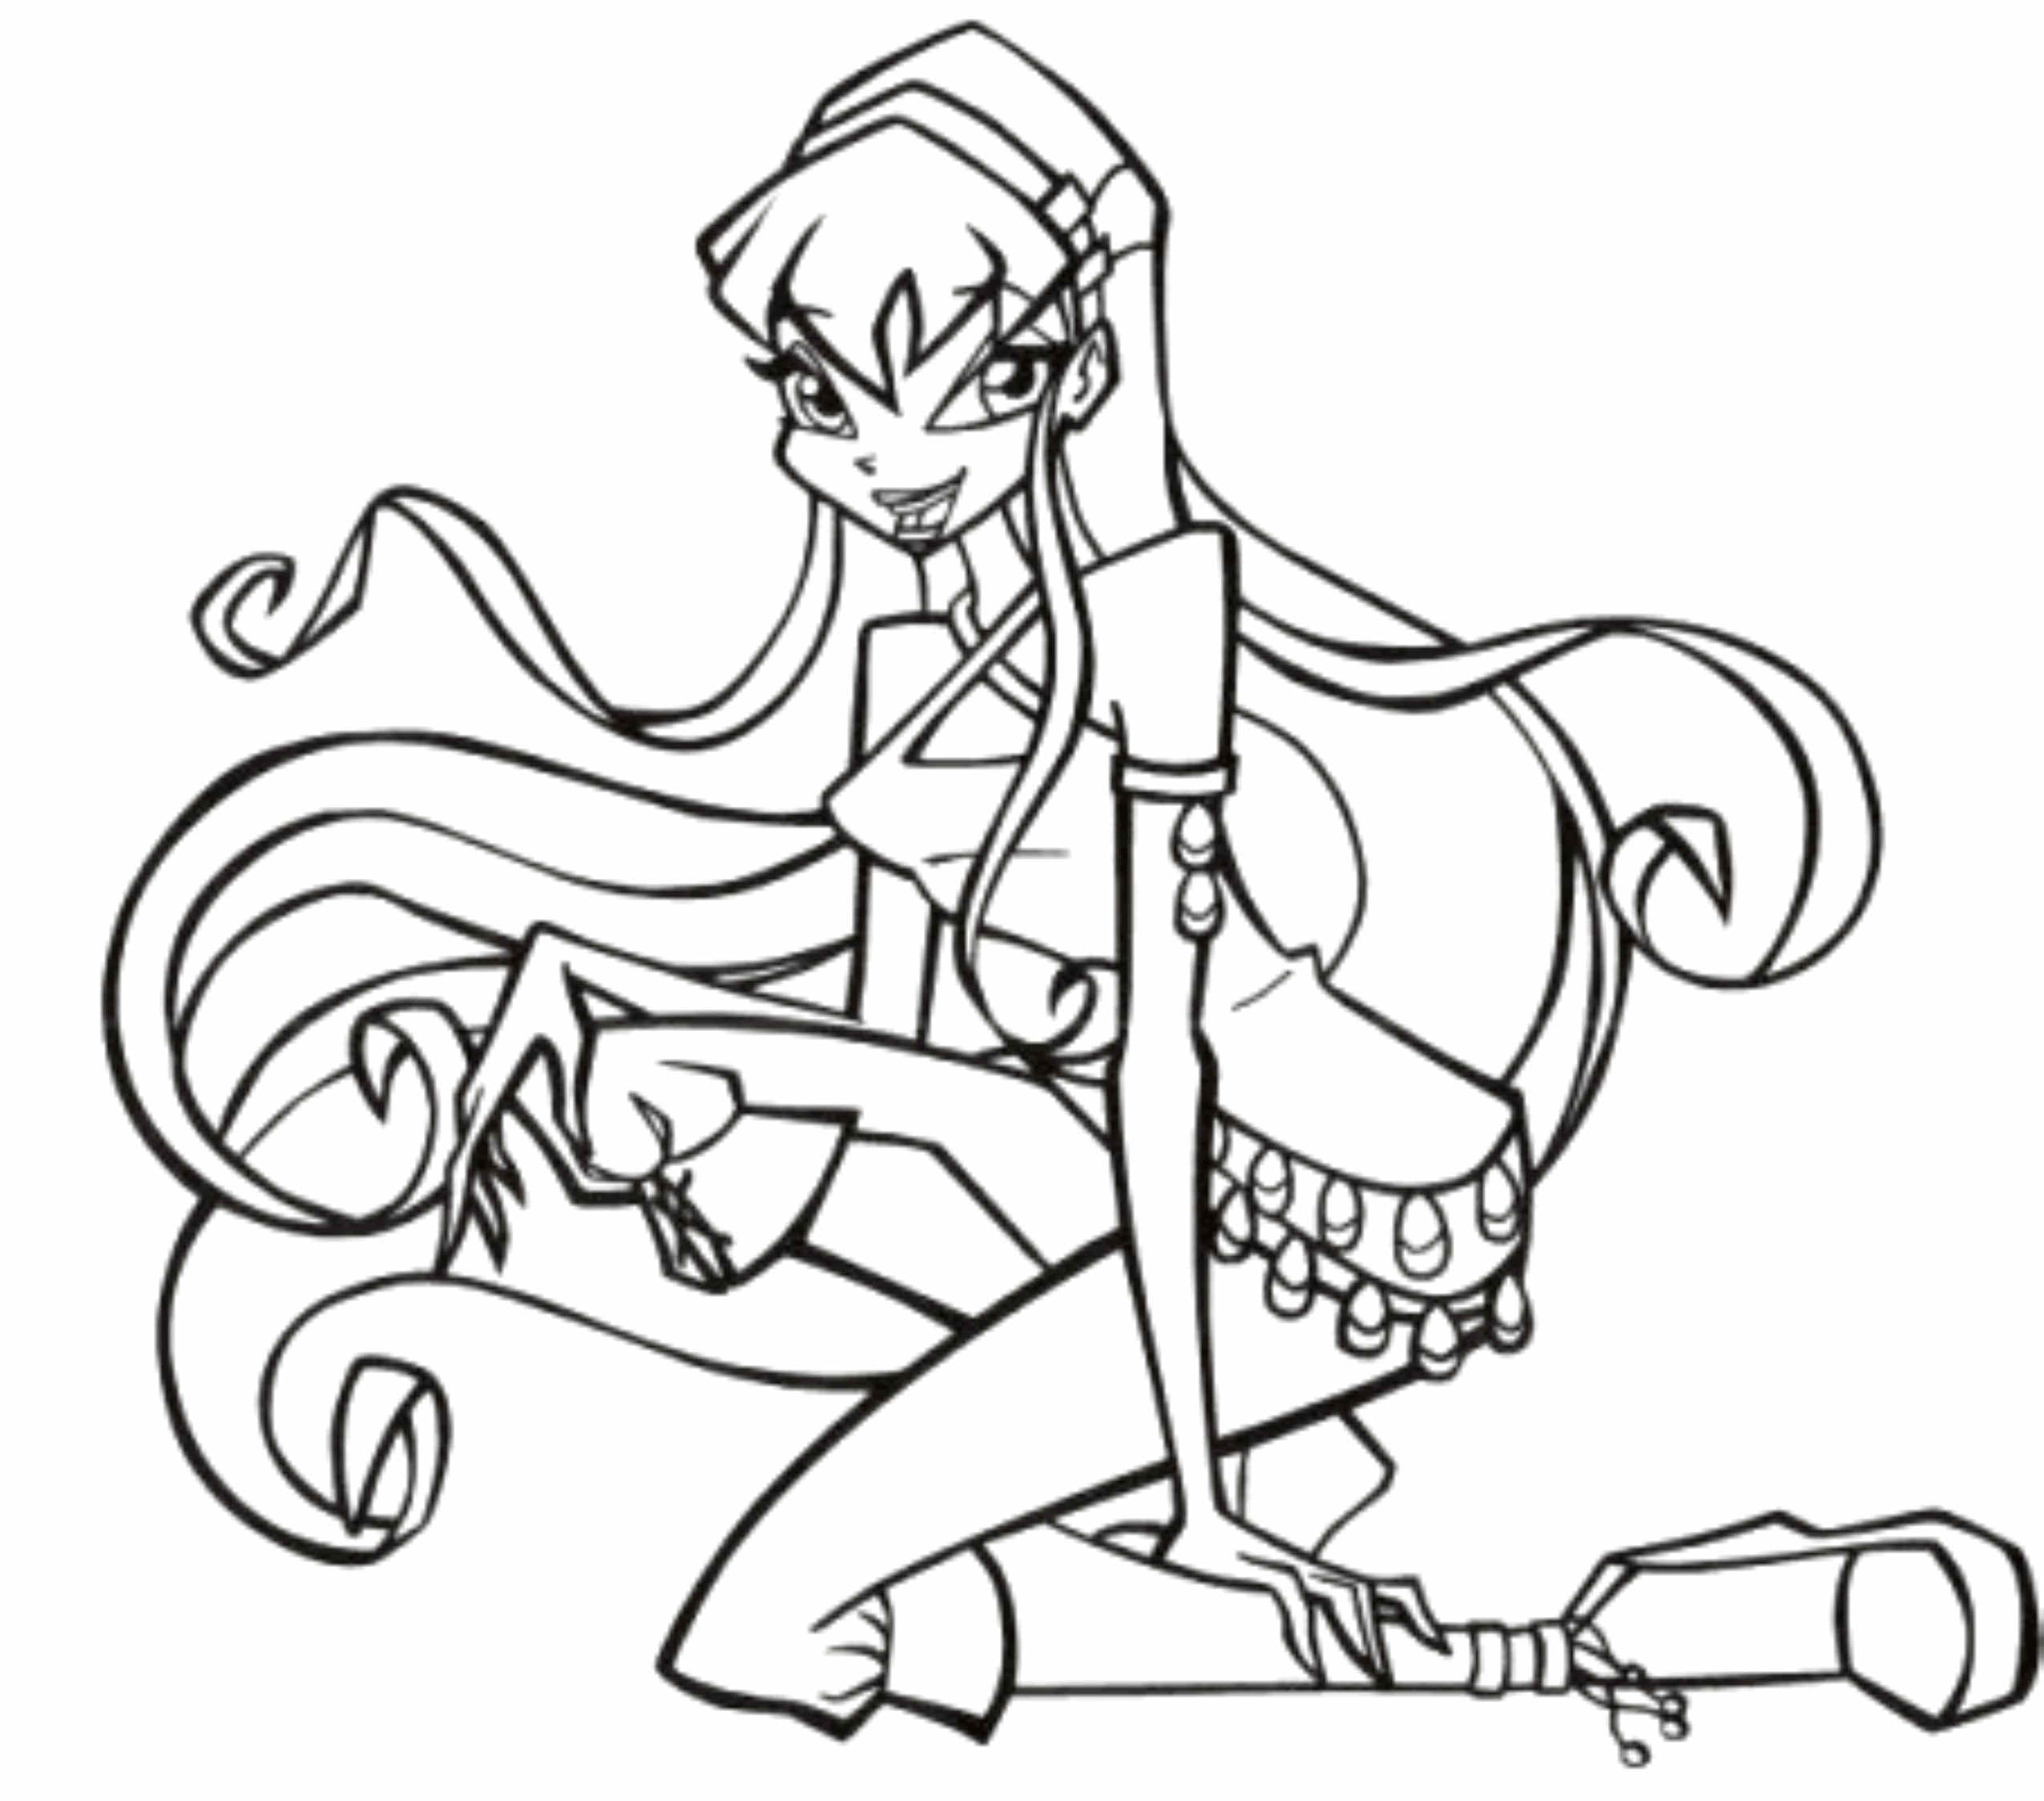 easy winx club coloring pages BestAppsForKidscom